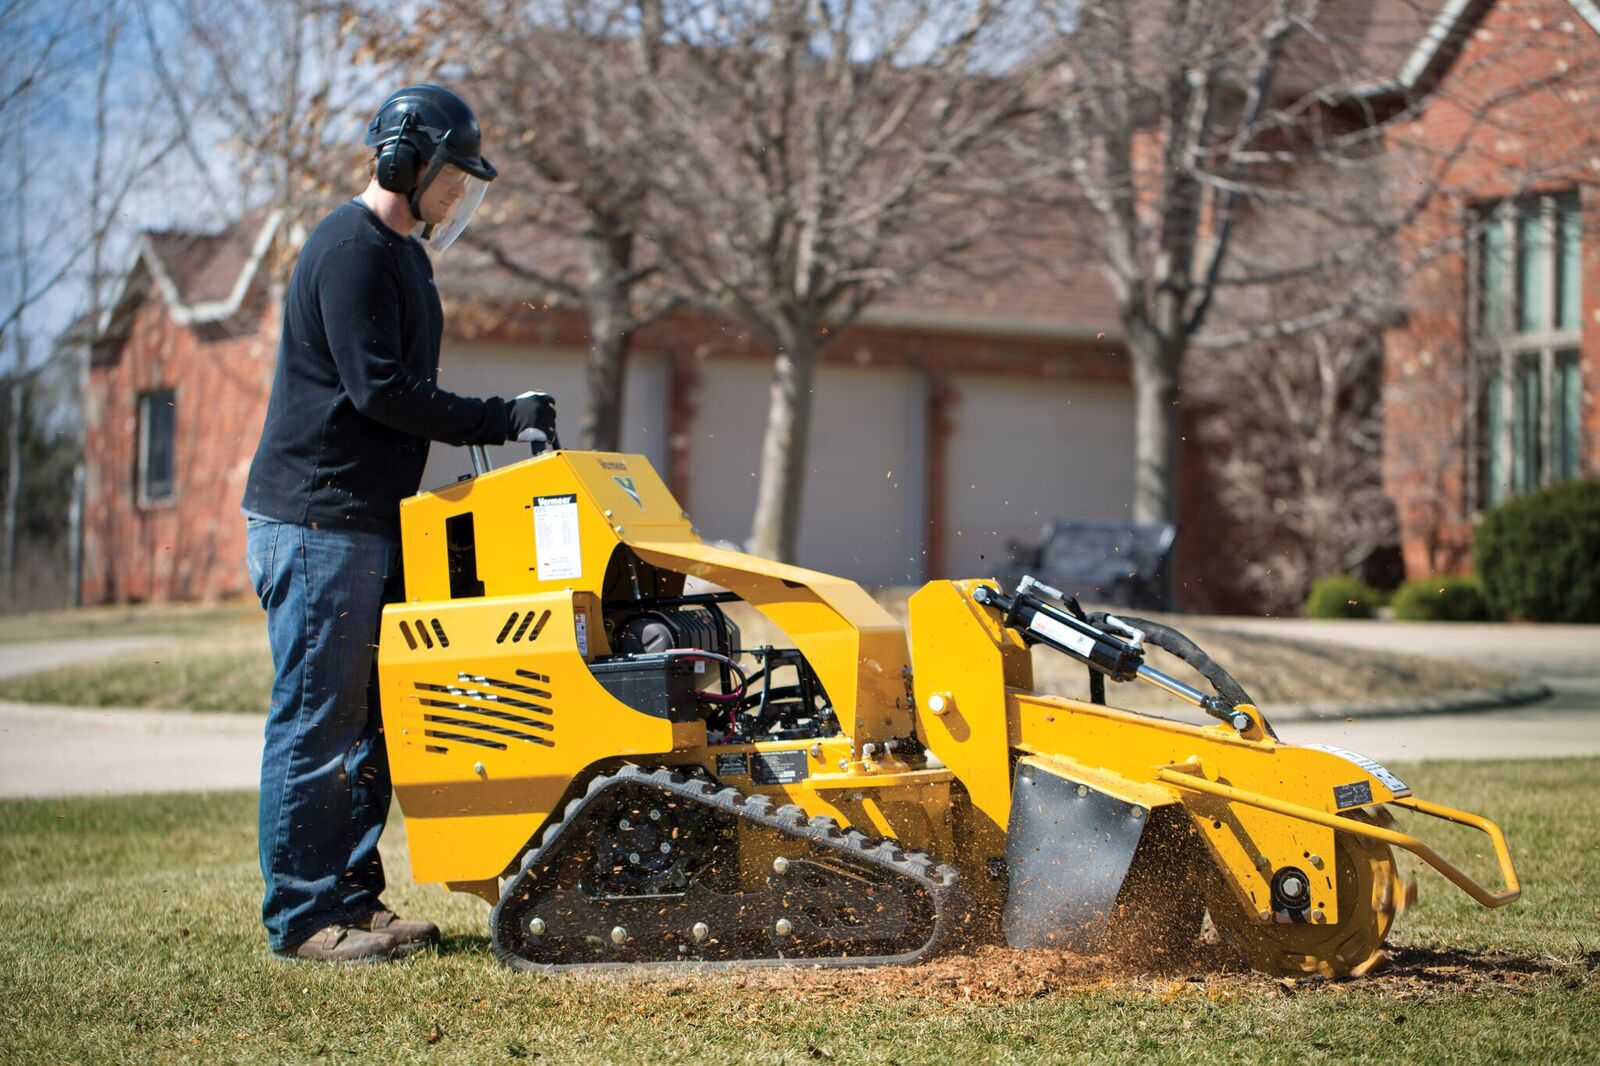 Raeford-Fayetteville Tree Trimming and Stump Grinding Services-We Offer Tree Trimming Services, Tree Removal, Tree Pruning, Tree Cutting, Residential and Commercial Tree Trimming Services, Storm Damage, Emergency Tree Removal, Land Clearing, Tree Companies, Tree Care Service, Stump Grinding, and we're the Best Tree Trimming Company Near You Guaranteed!